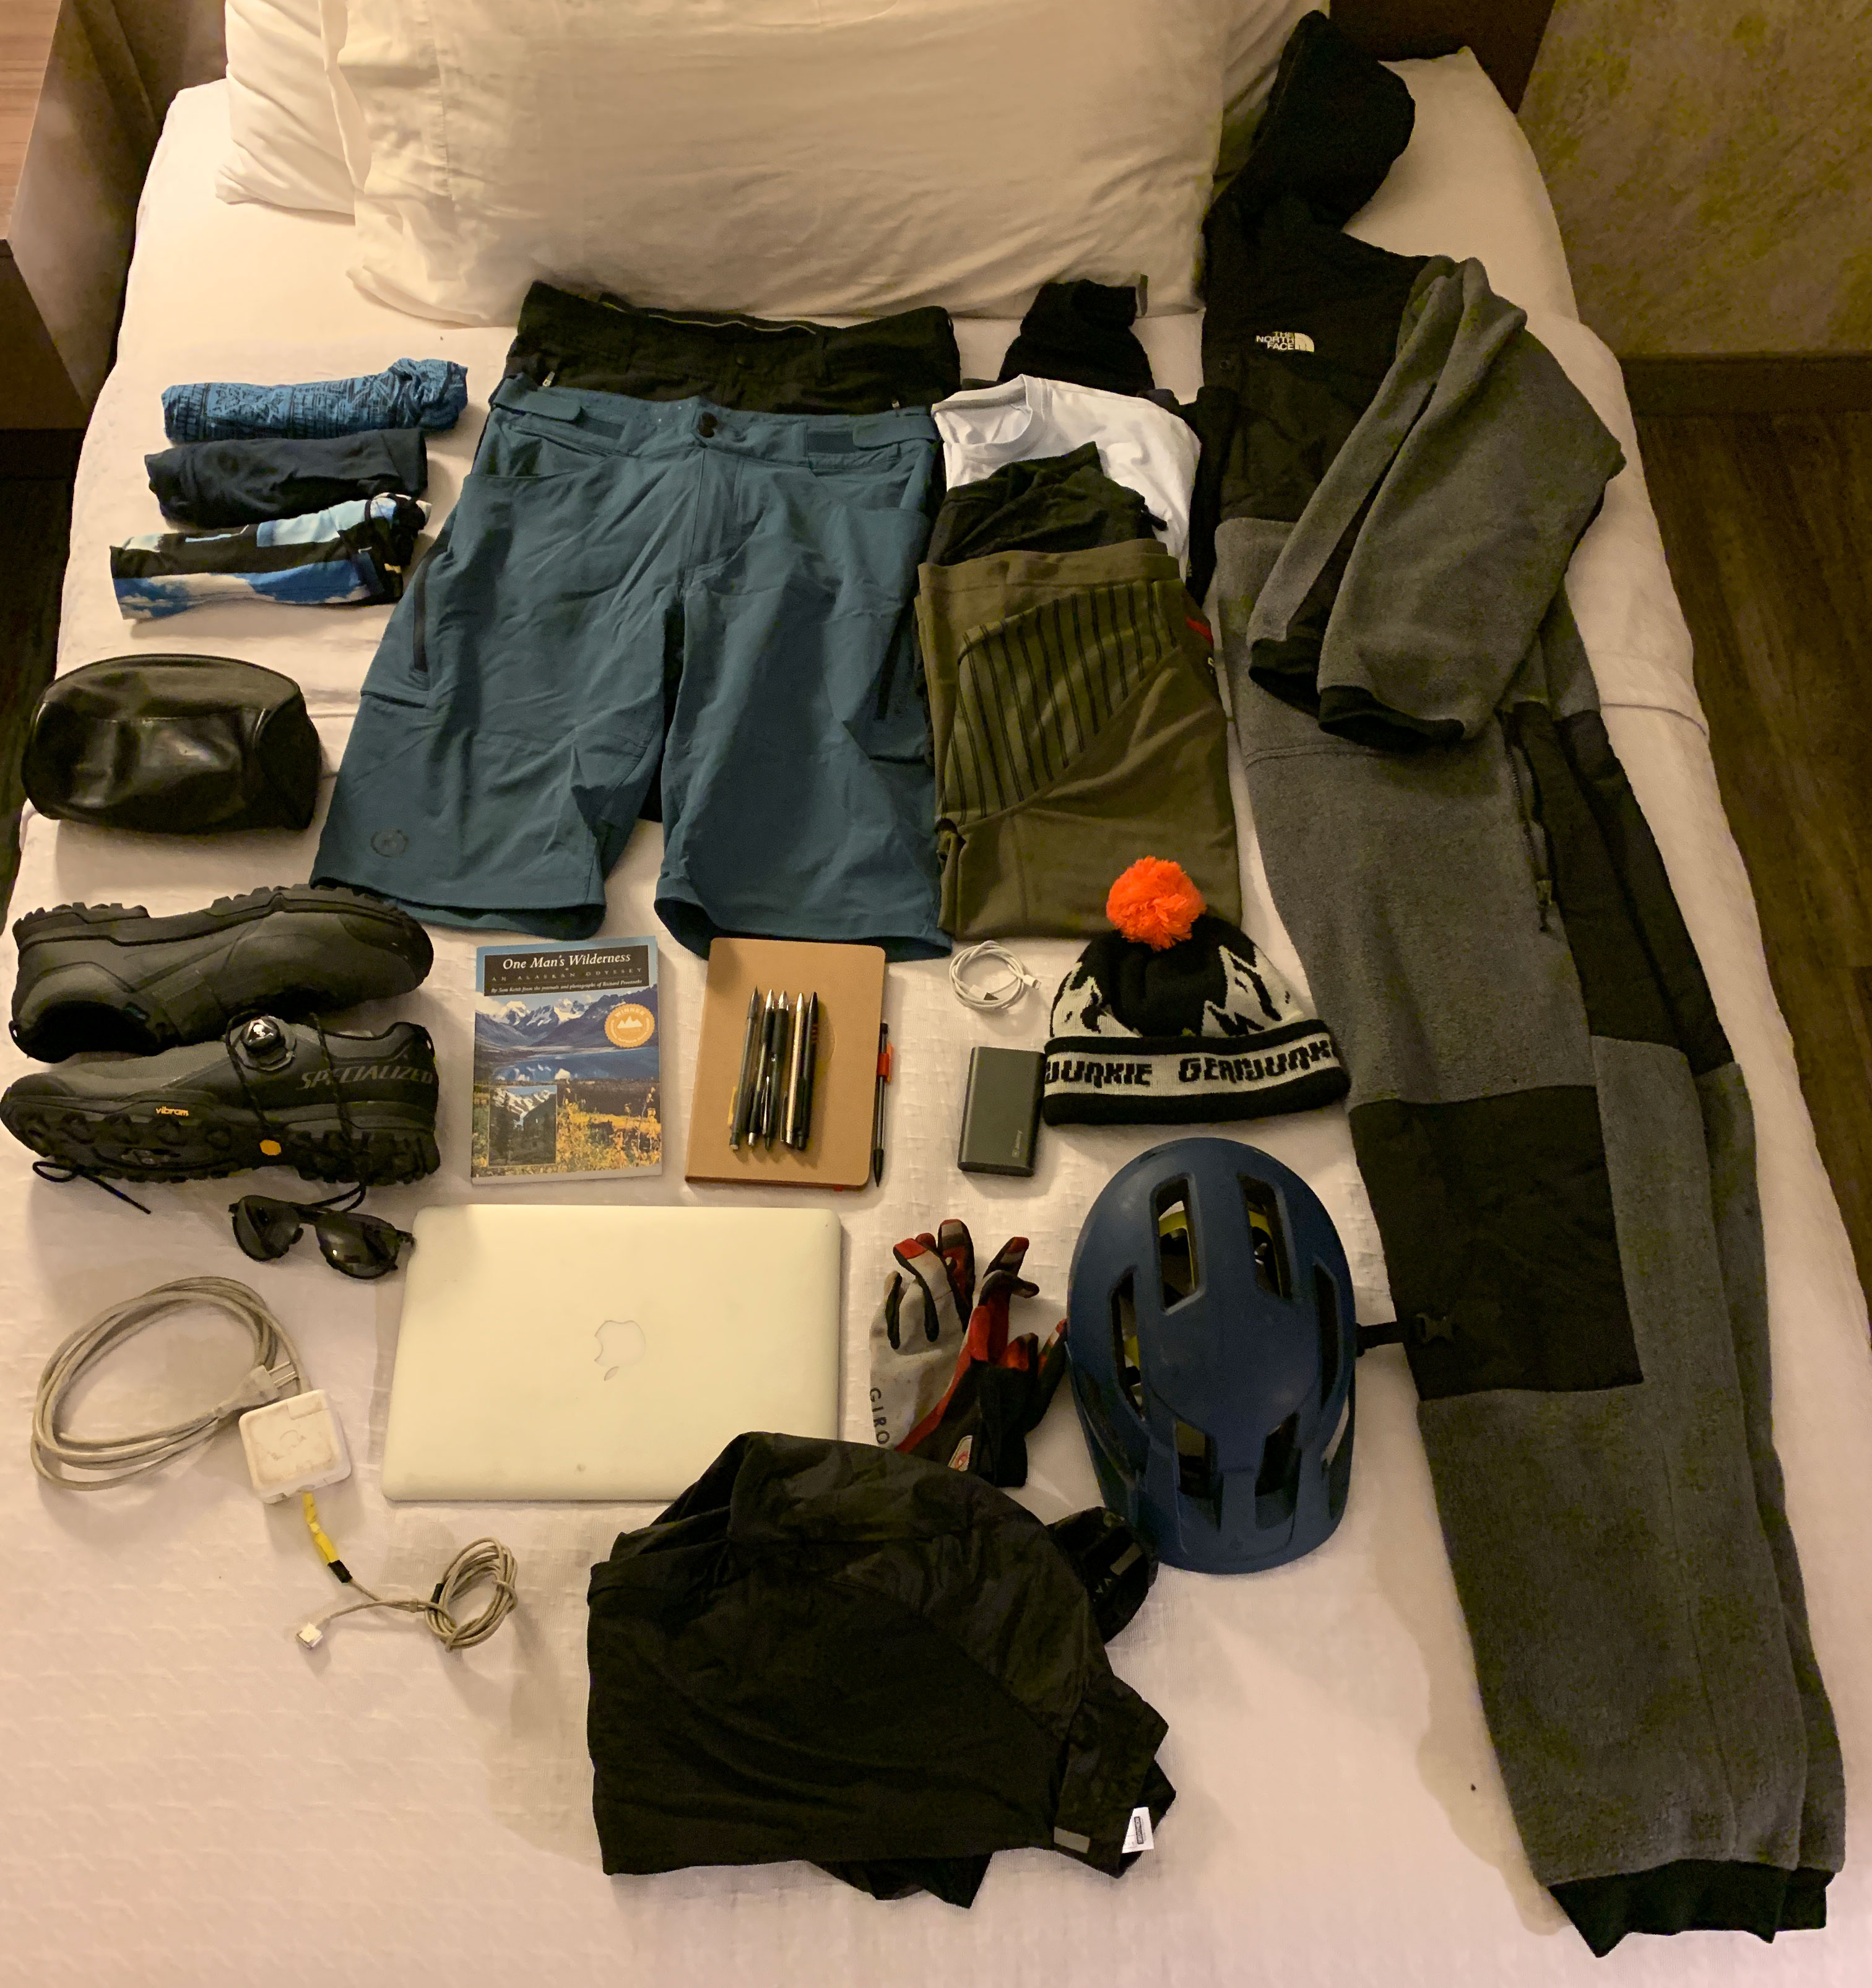 Cotopaxi Allpa 42 travel pack unpacked